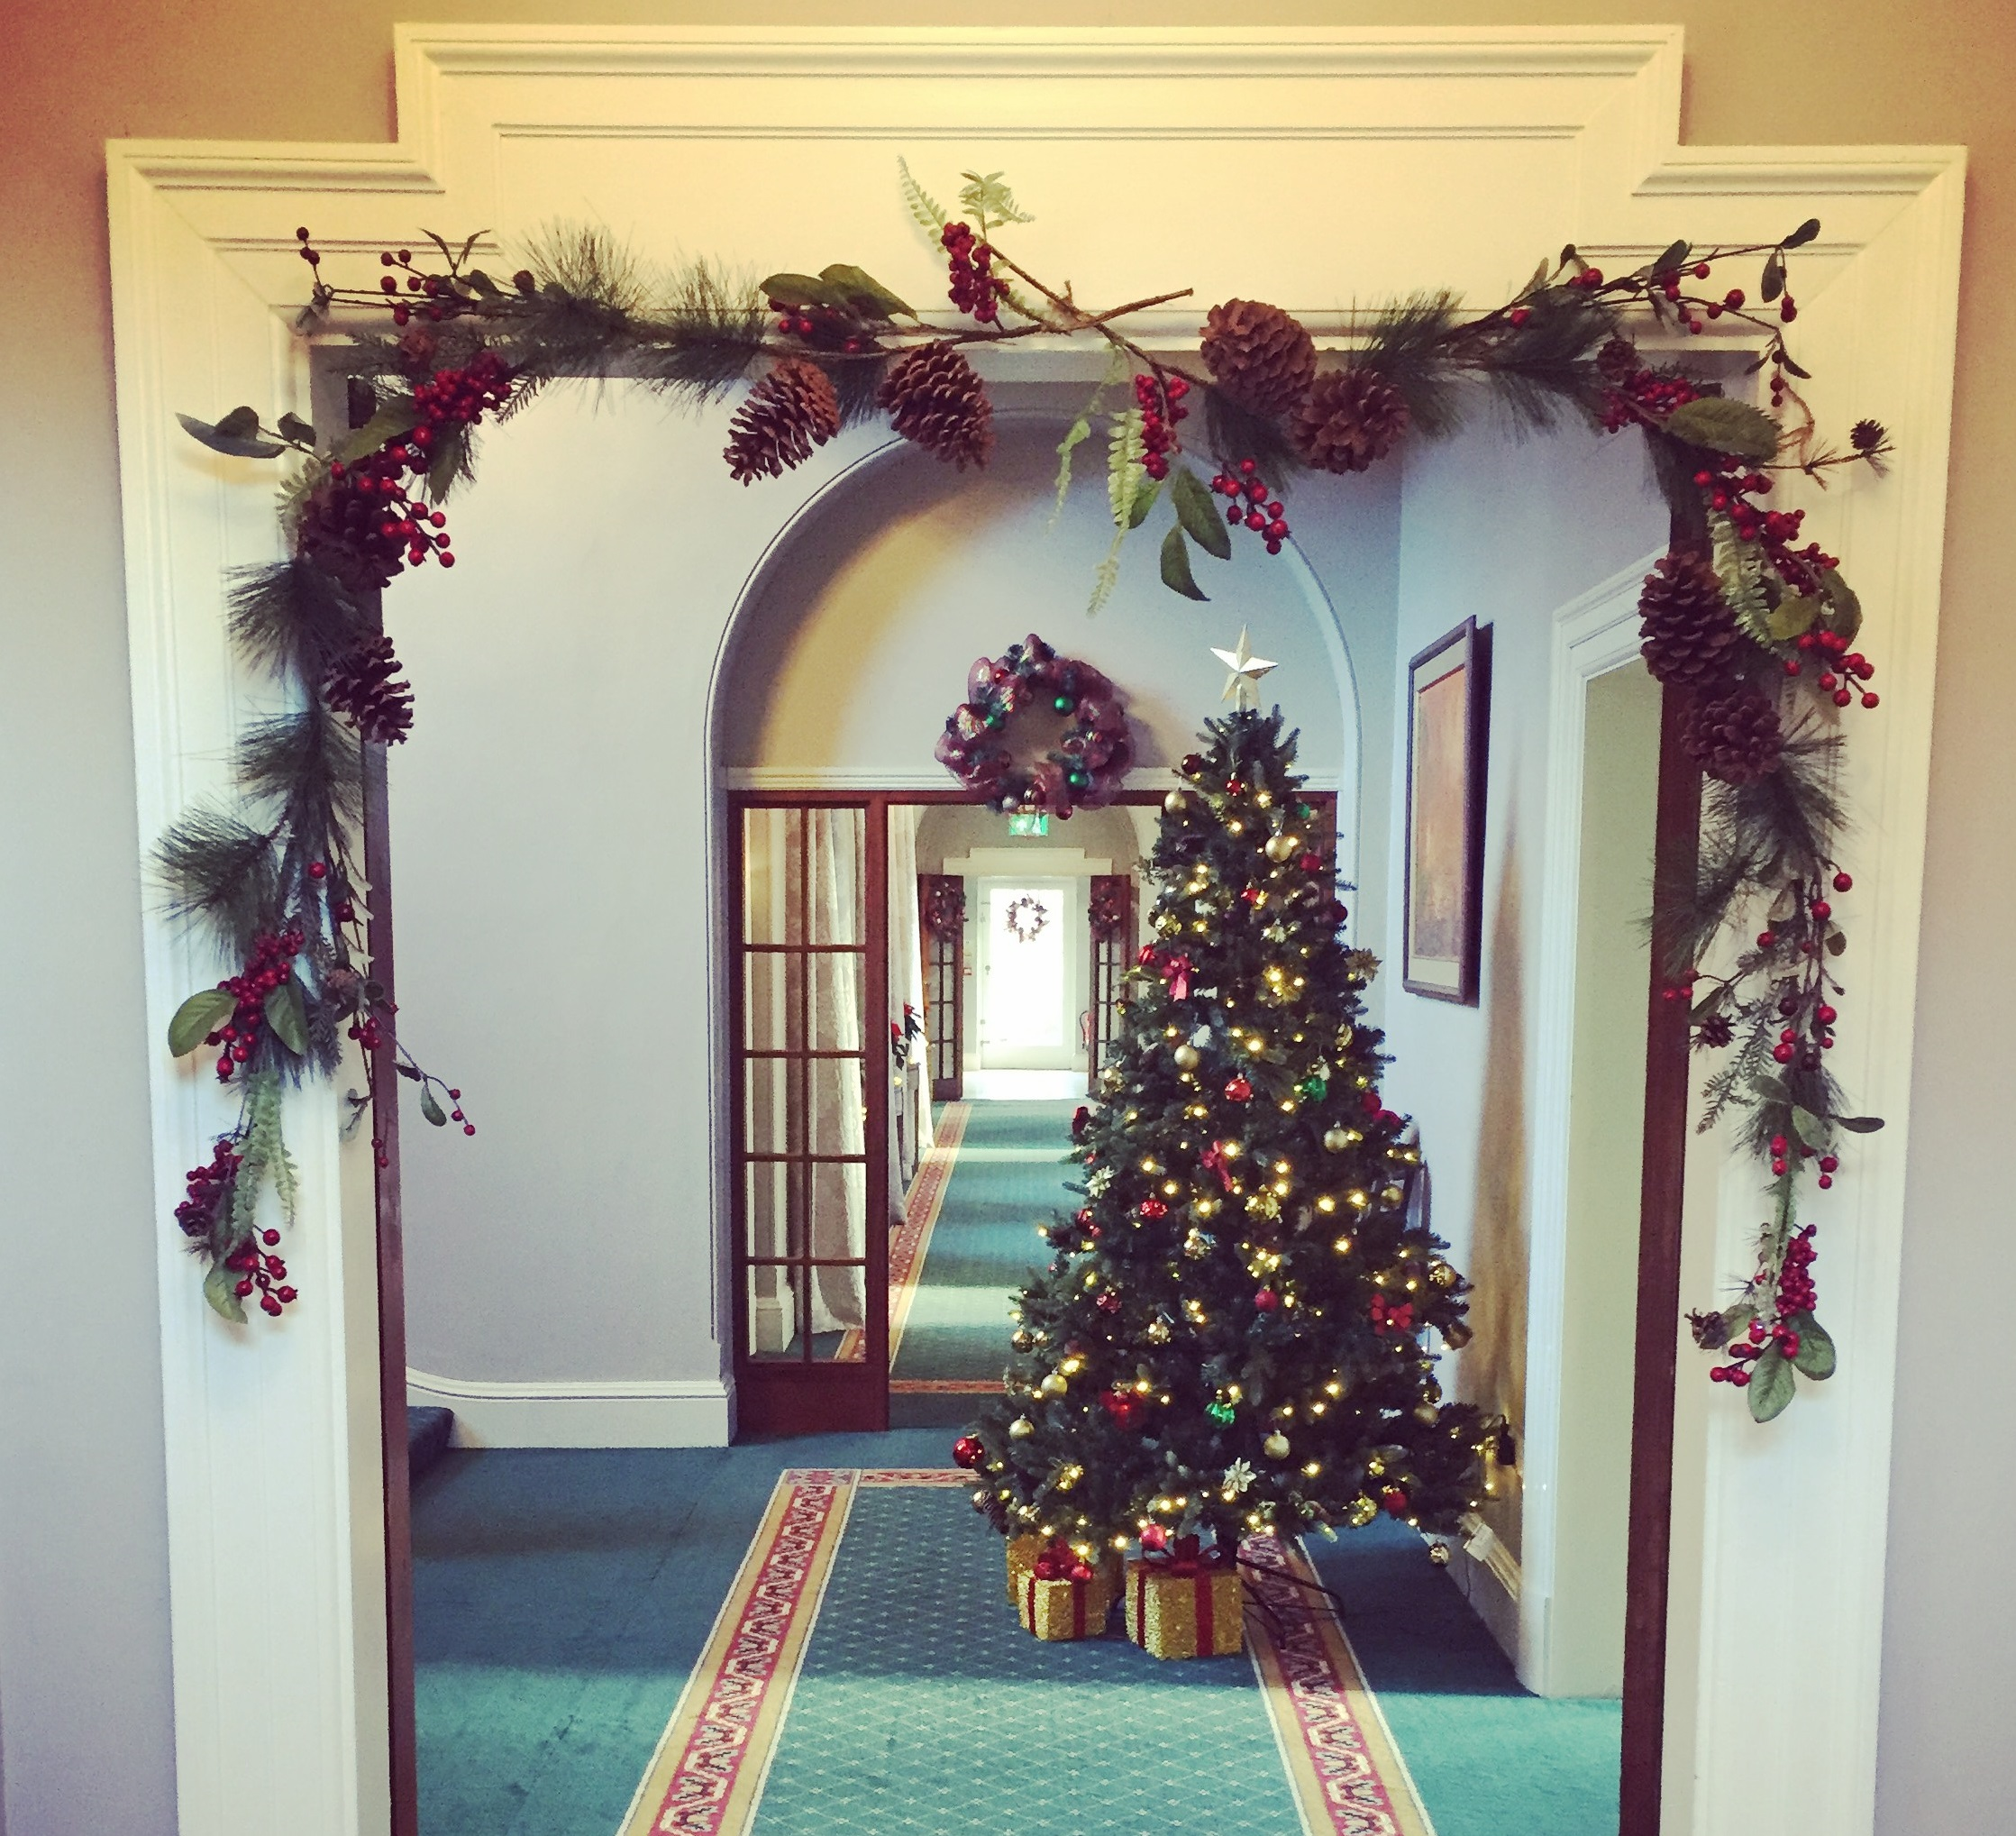 Christmas at Catthorpe